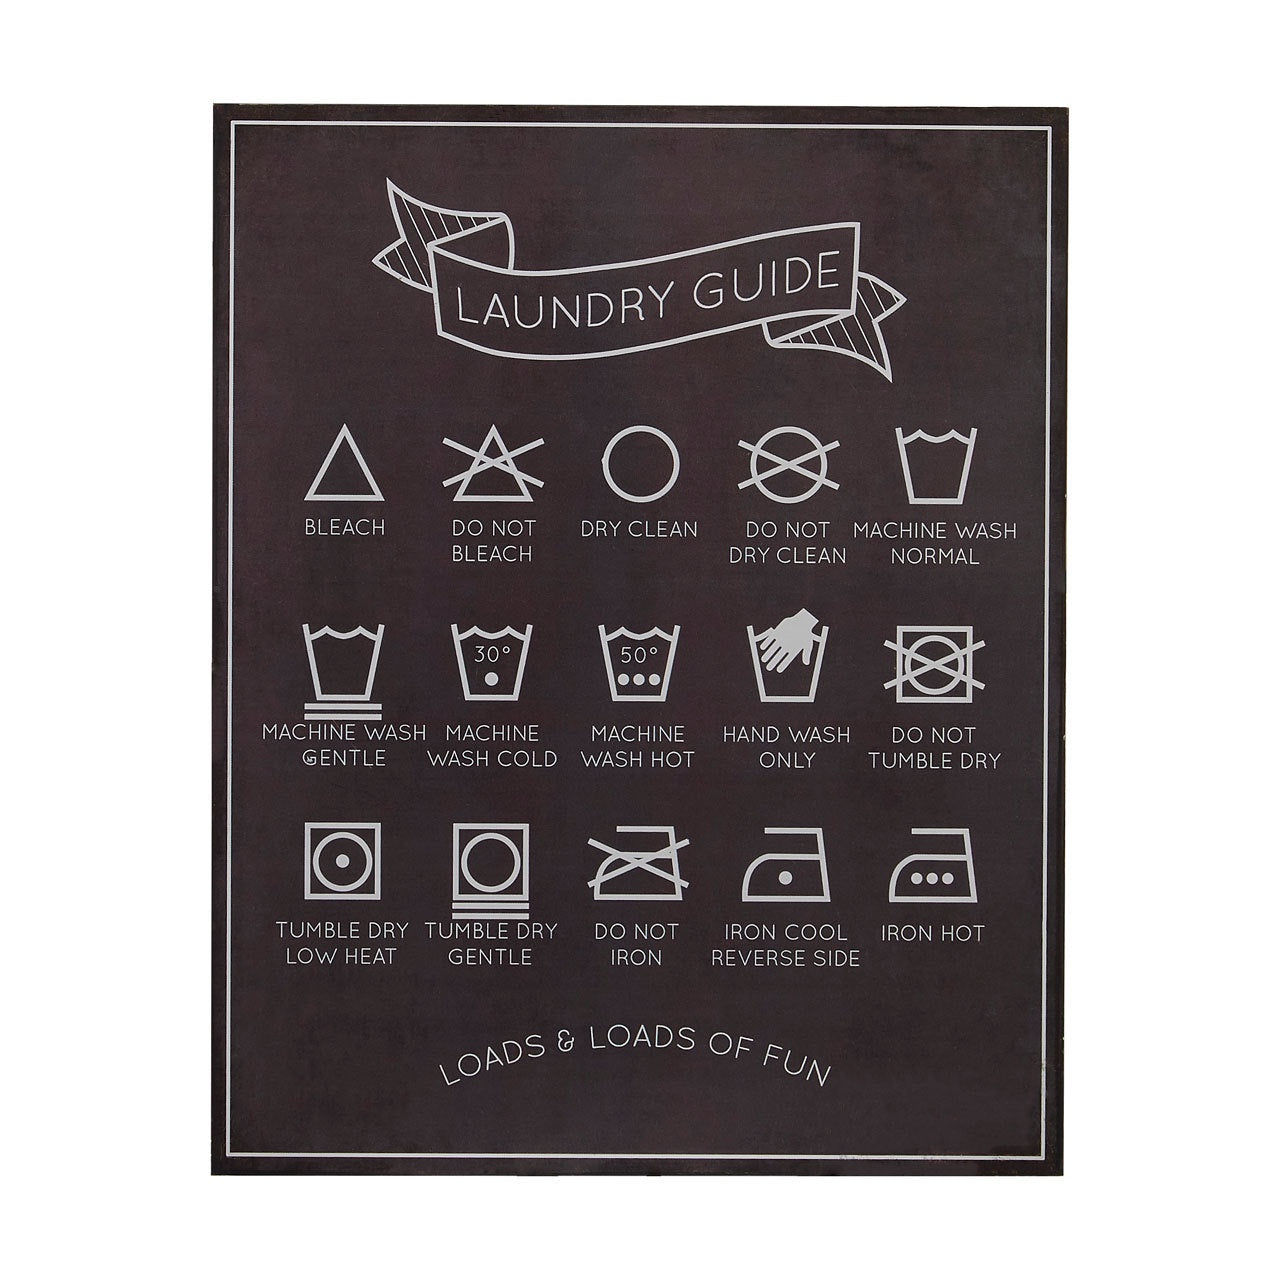 PREMIER LAUNDRY GUIDE WALL PLAQUE 20 X 25CM - 2800763